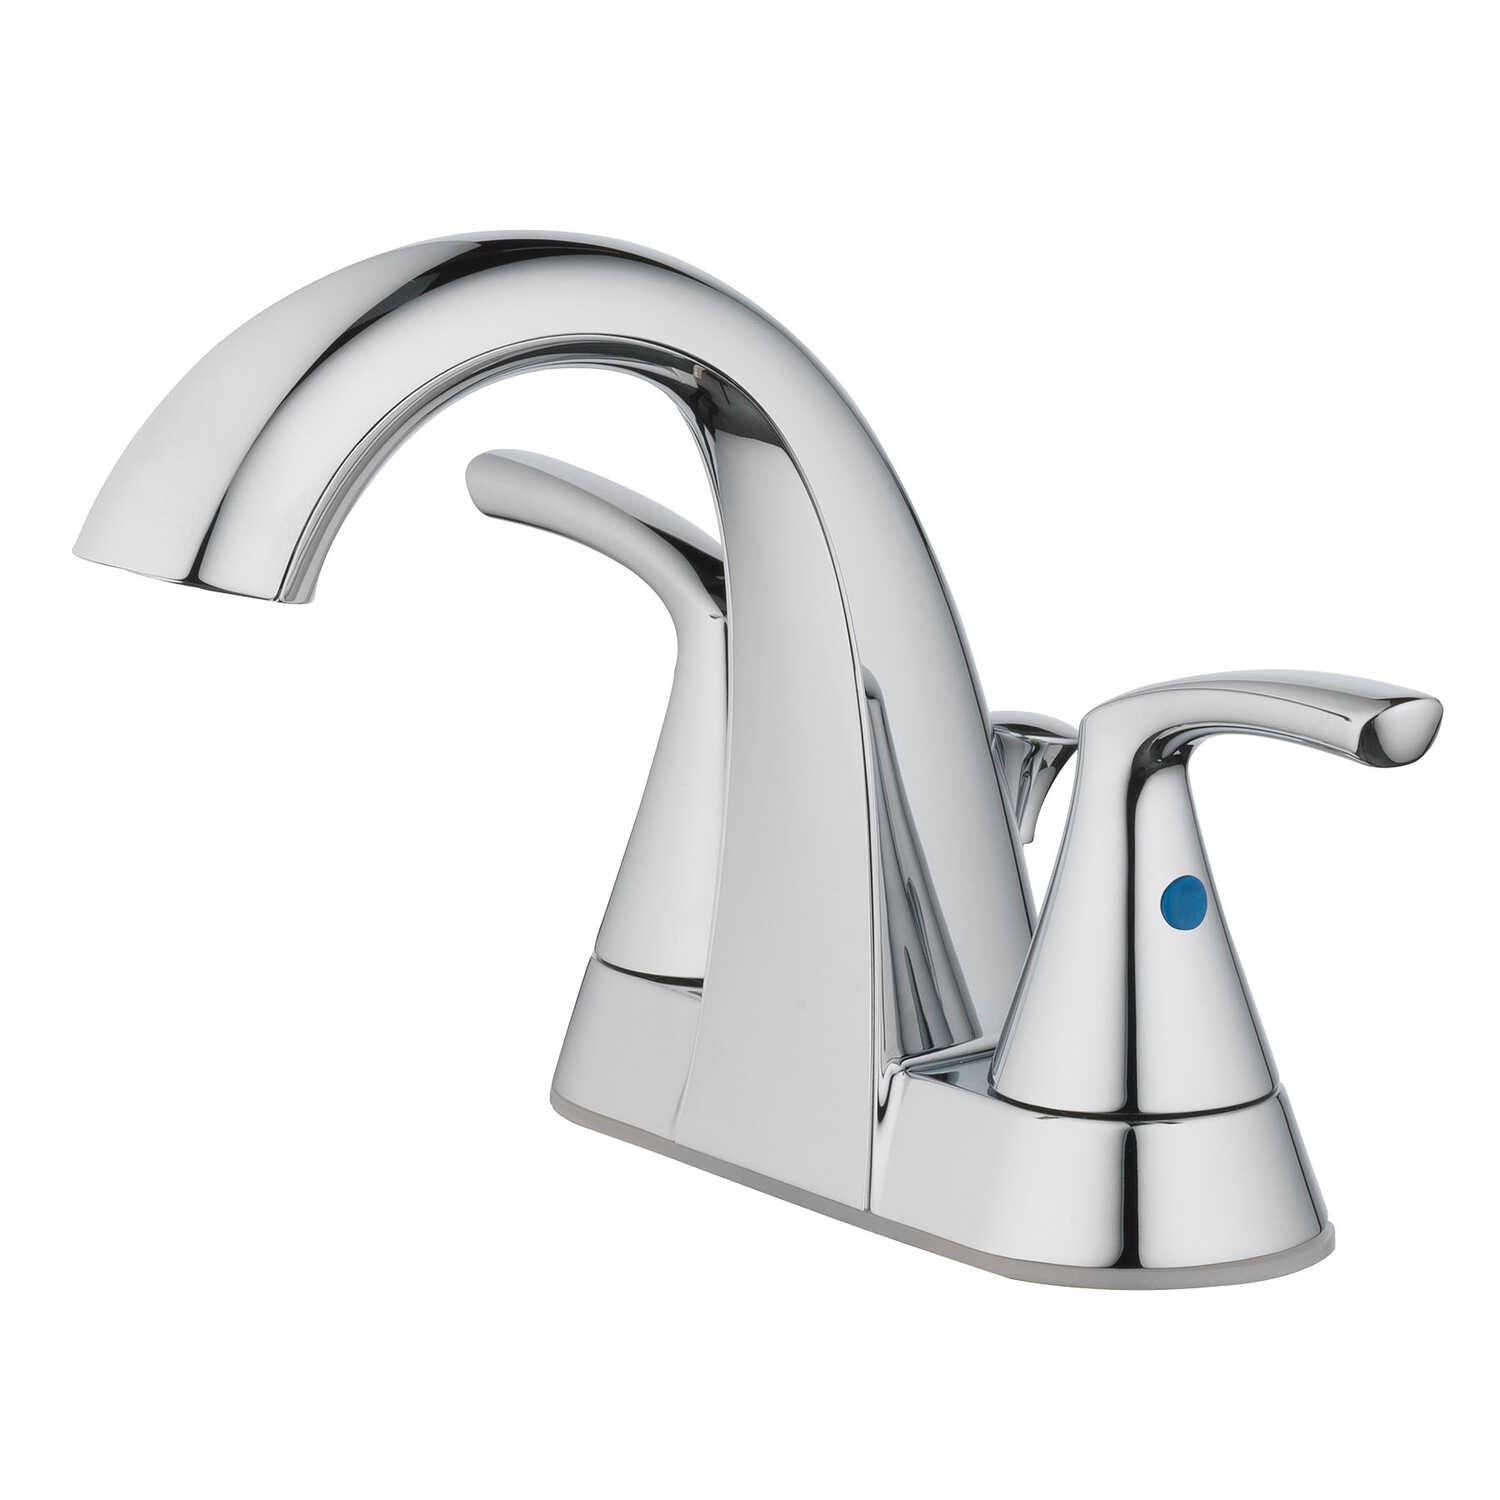 OakBrook  Pacifica  Two Handle  Lavatory Pop-Up Faucet  4 in. Chrome